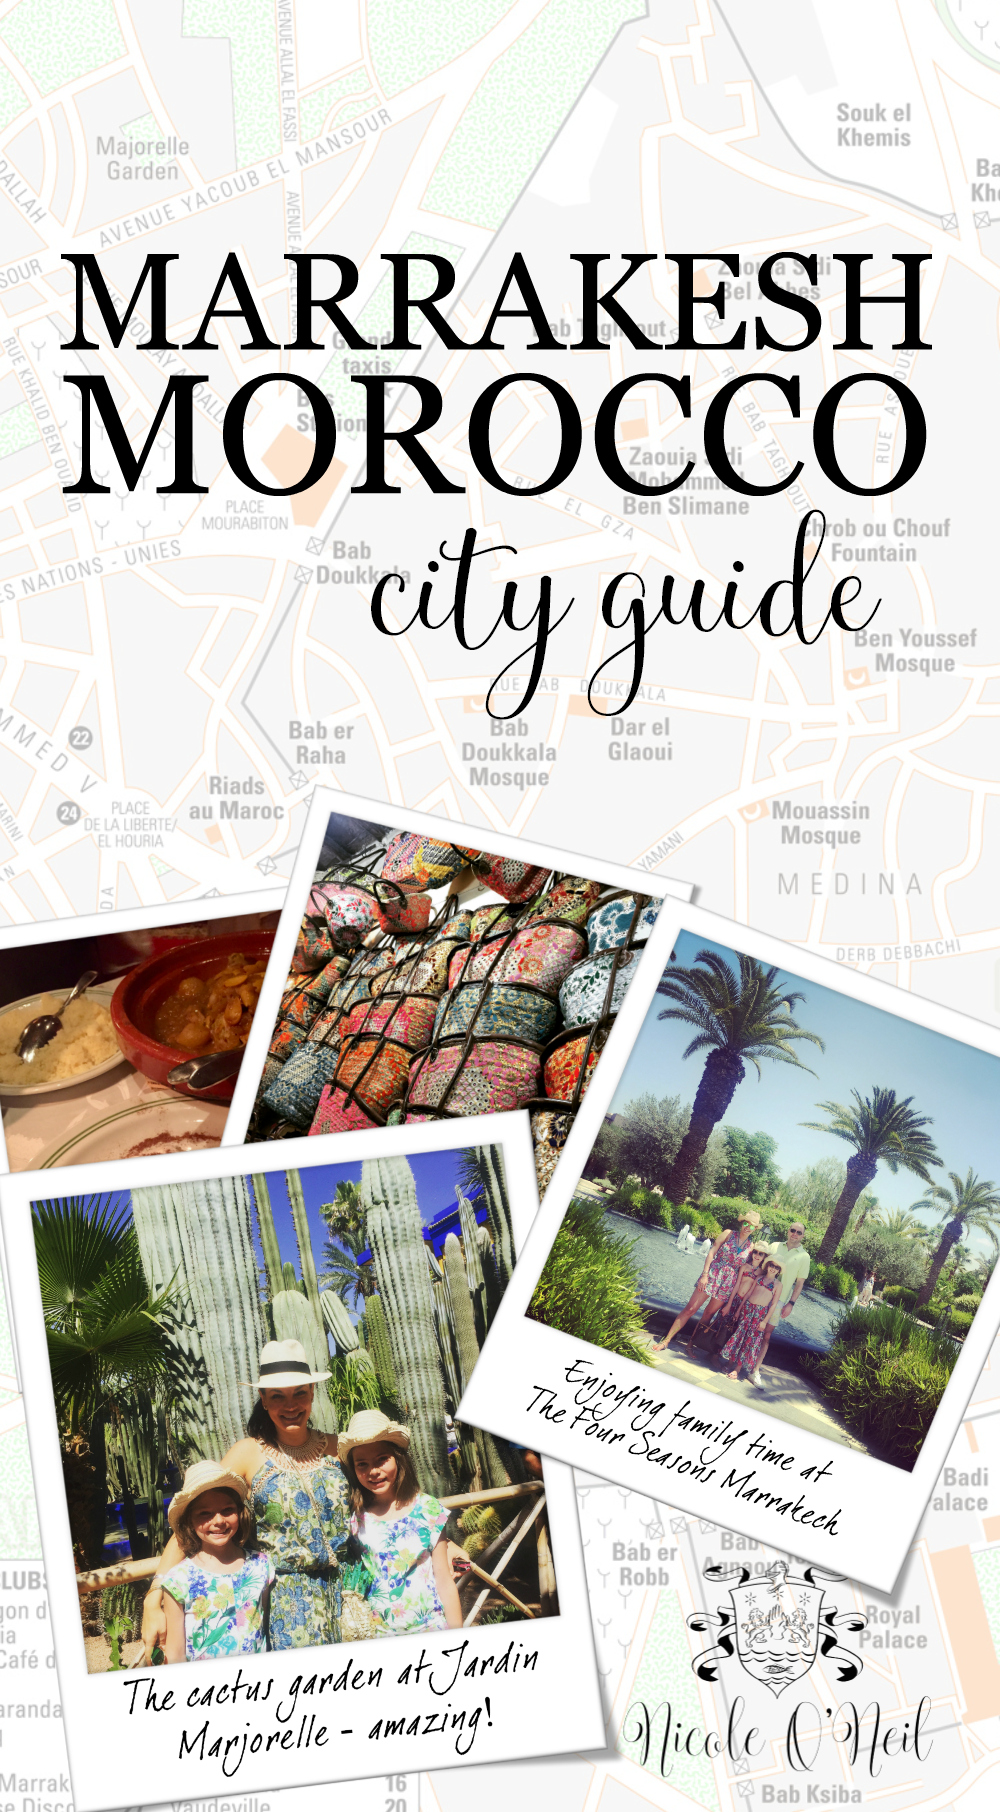 Nicole O'Neil's Complete Travel Guide to Marrakesh, Morocco - Find out the best places to shop, eat and explore in Marrakesh as The Real Housewives of Sydney's Nicole O'Neil shares her firsthand experiences and travel snaps in this Marrakesh City Guide.